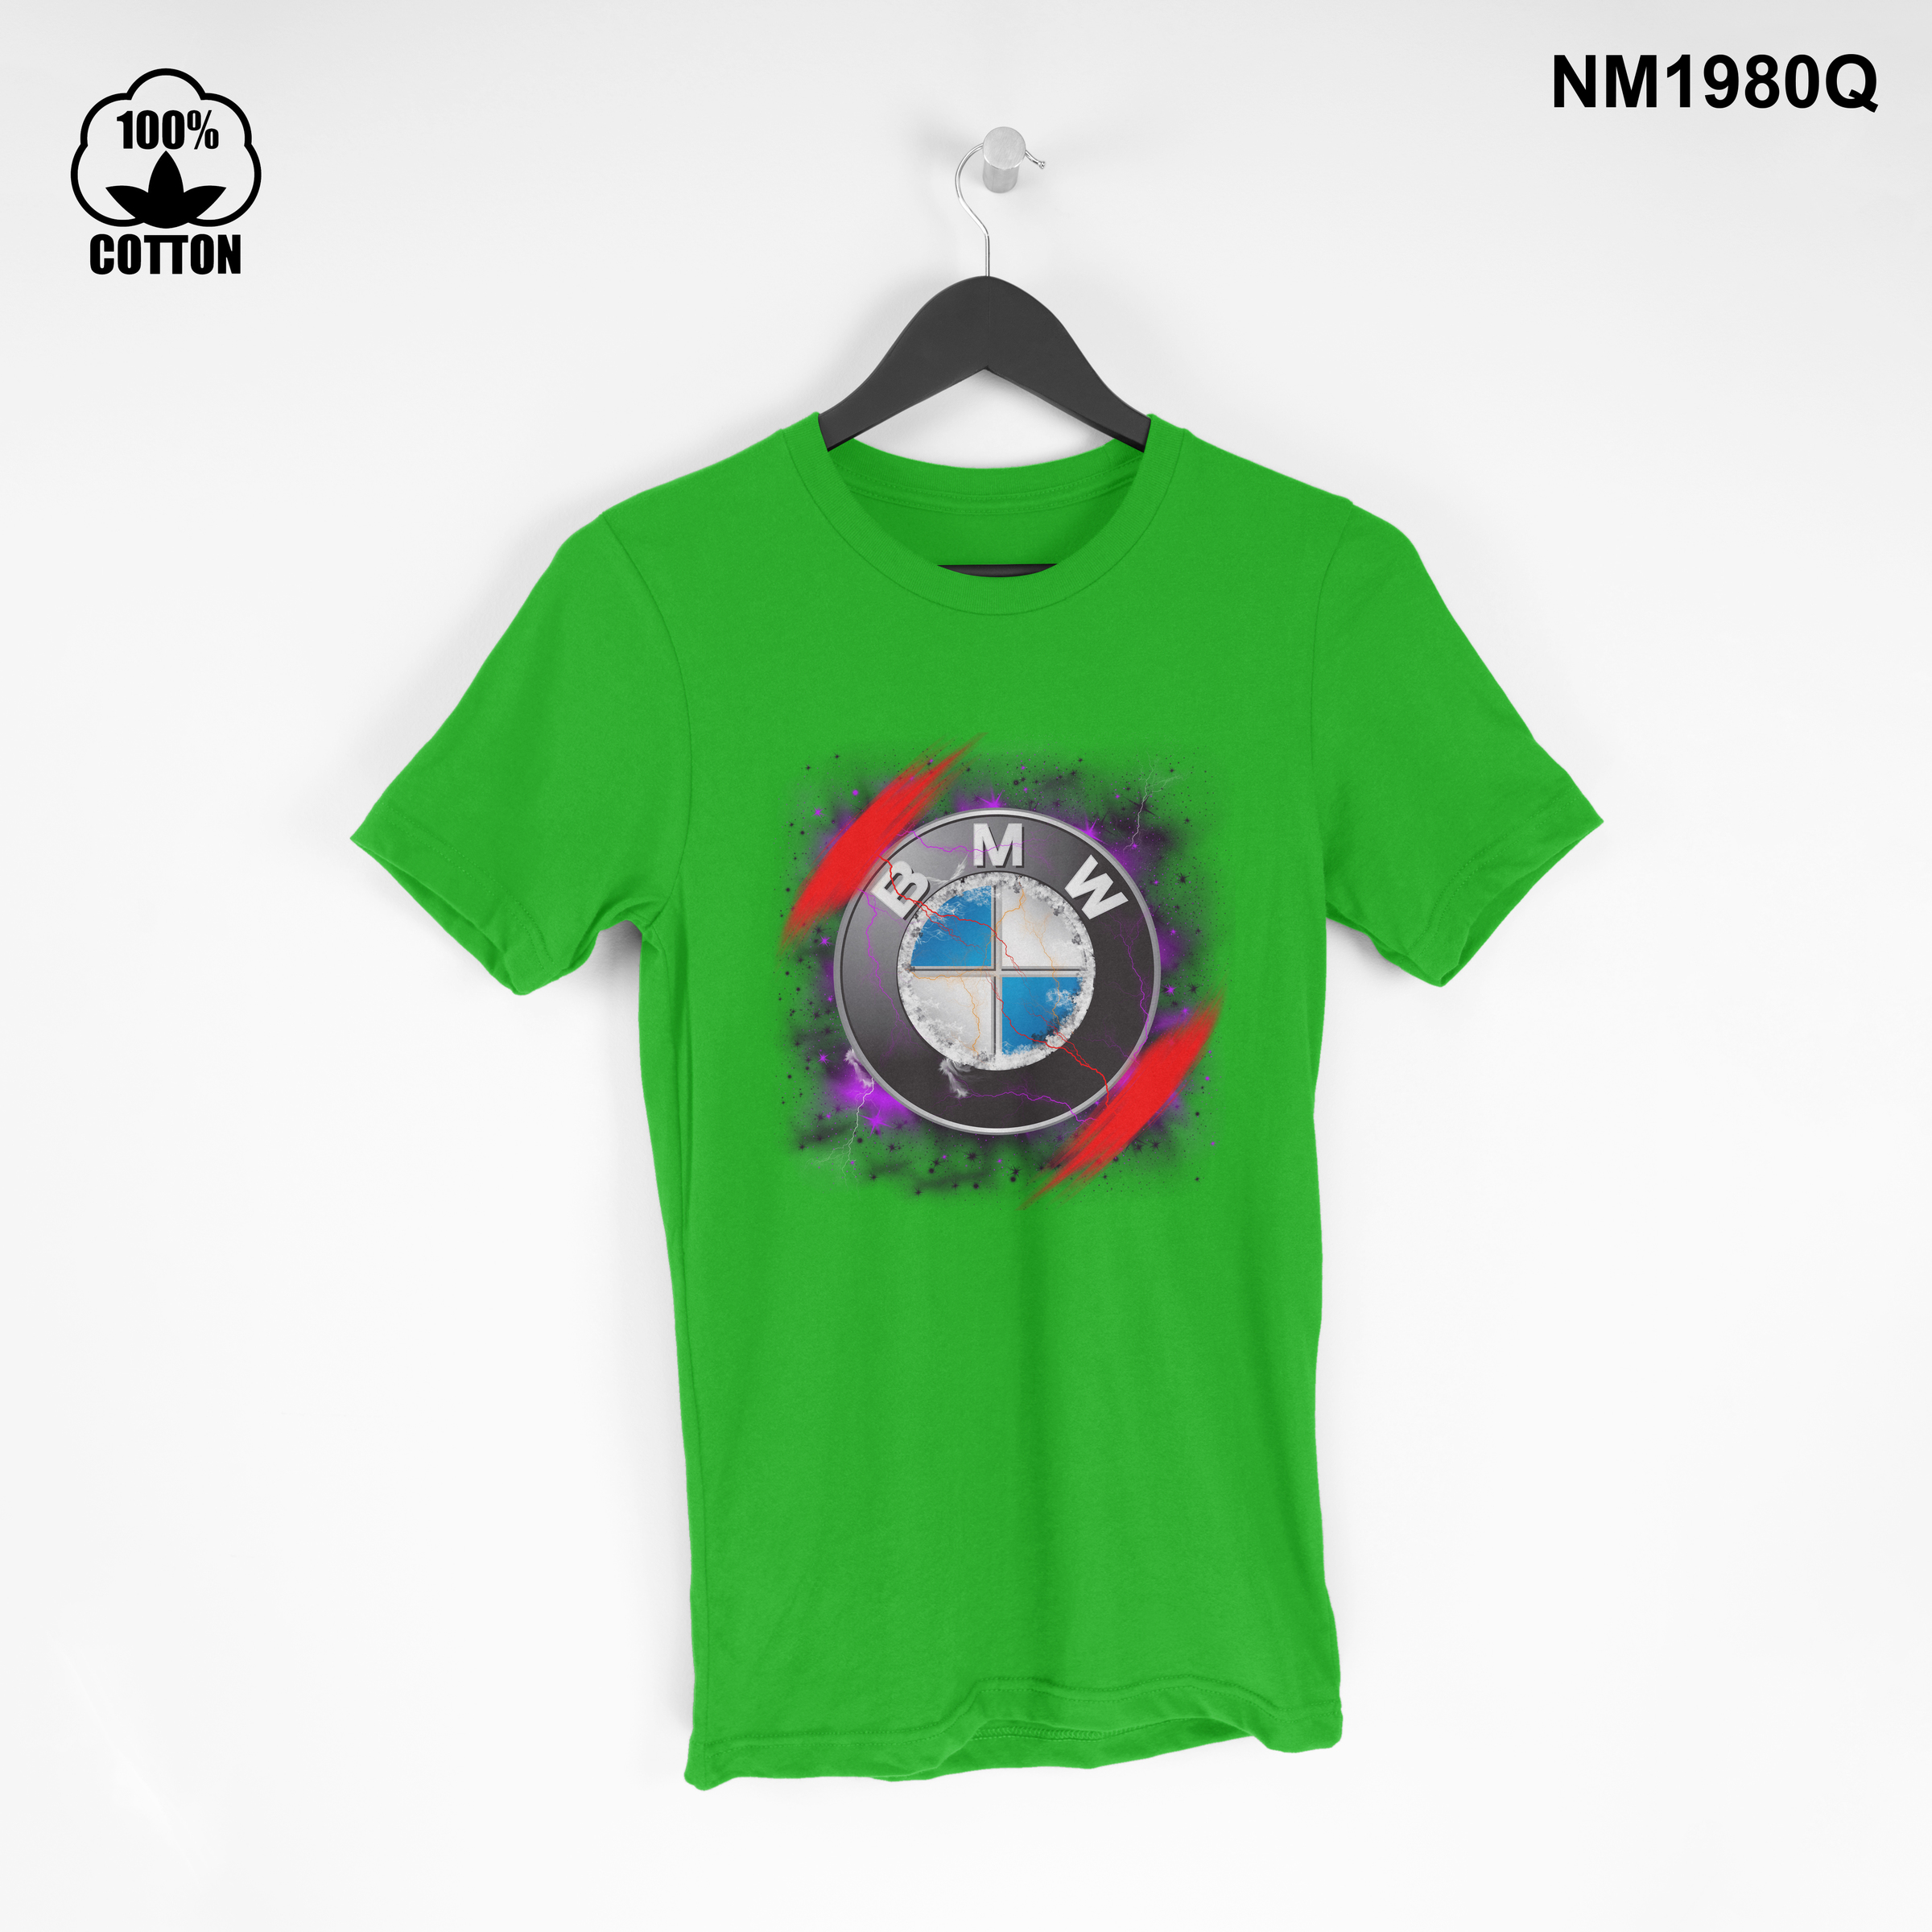 1.47 Rare Iitem BMW space New Design T Shirt Tee Unisex spring green.jpg